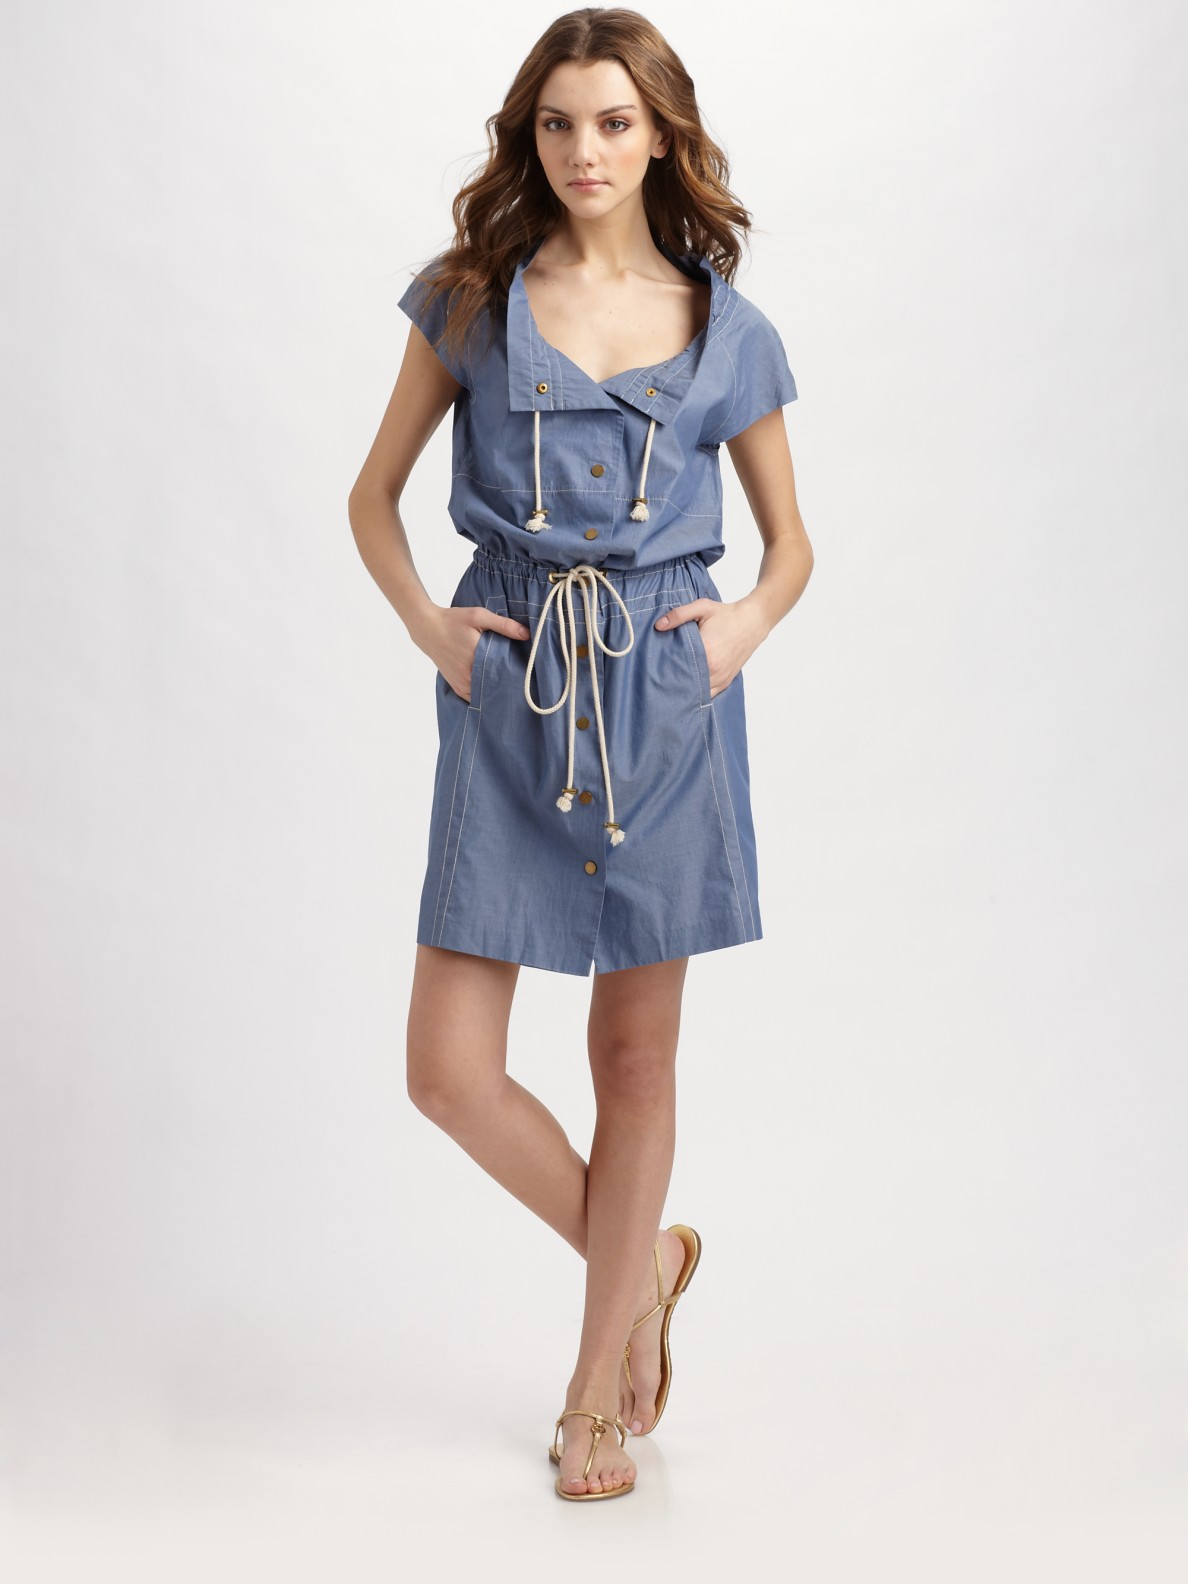 Lyst Tory Burch Pepper Summer Spring Chambray Dress In Blue